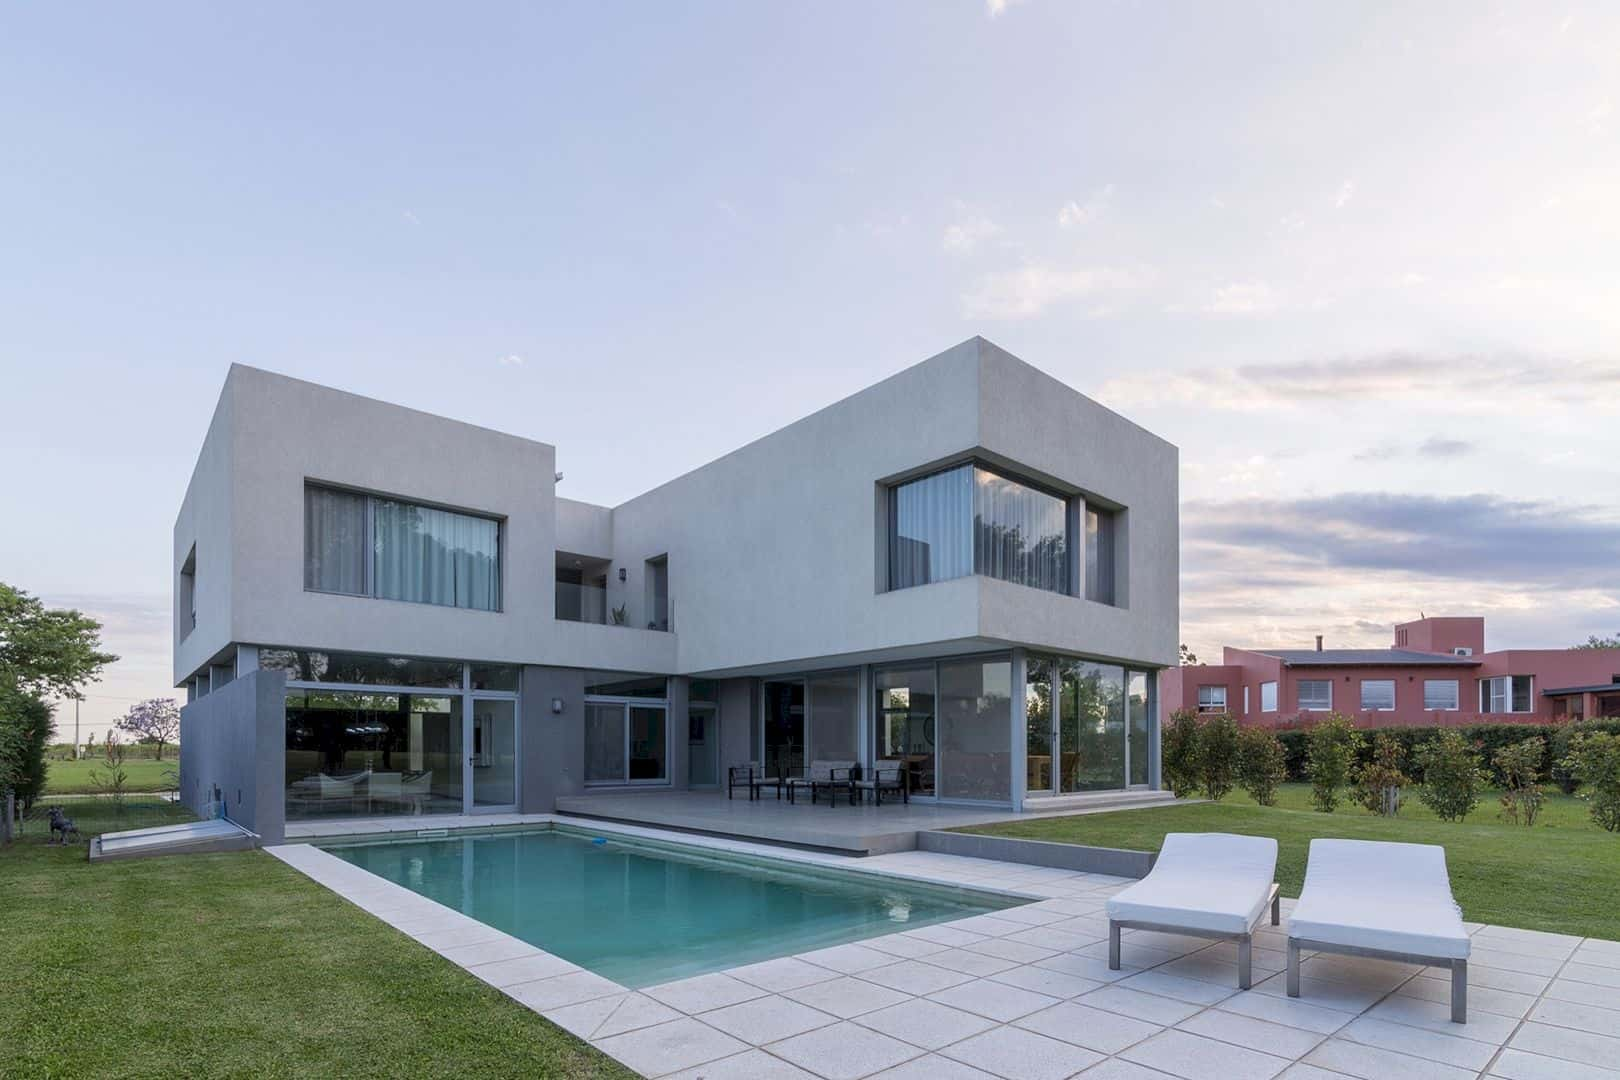 House In El Paso Enhancing The Relationship Inside With The Surrounding Landscape 8